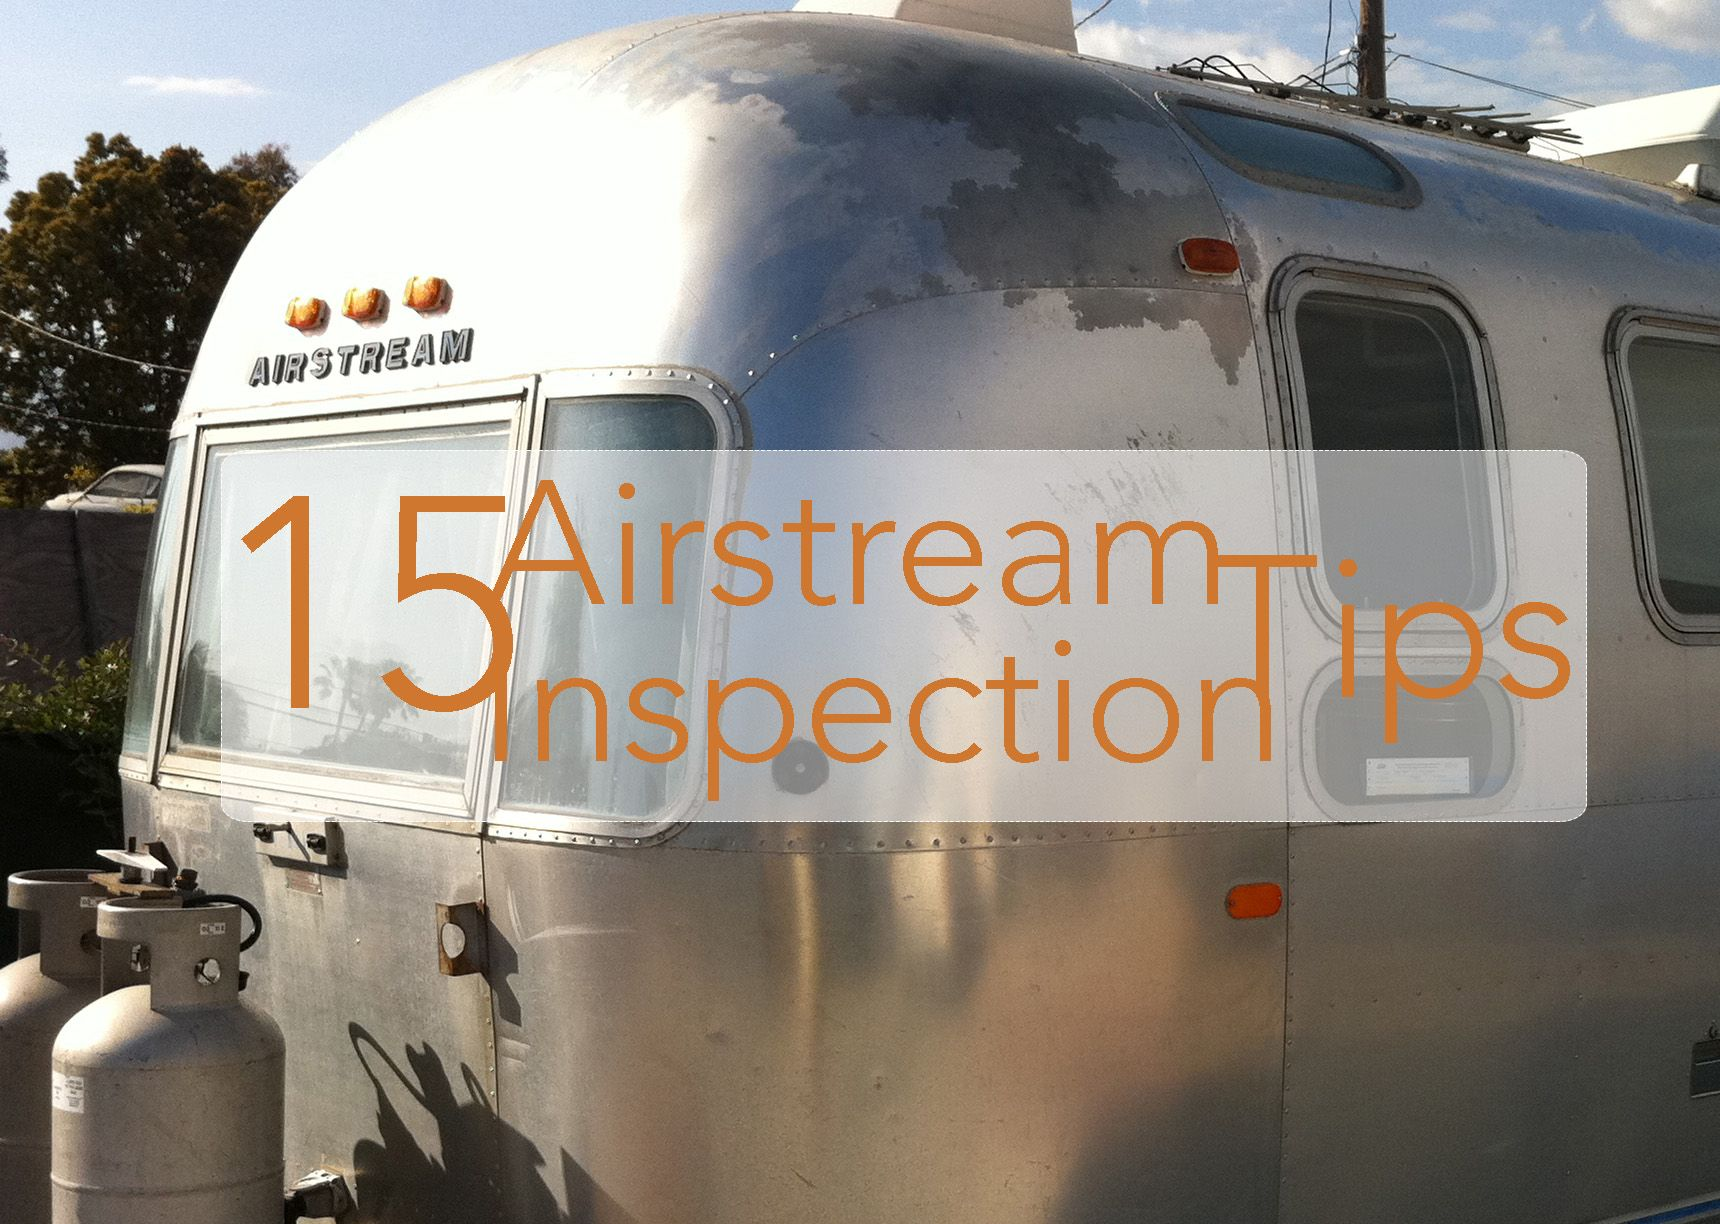 Best 25 Airstream ideas on Pinterest Airstream campers